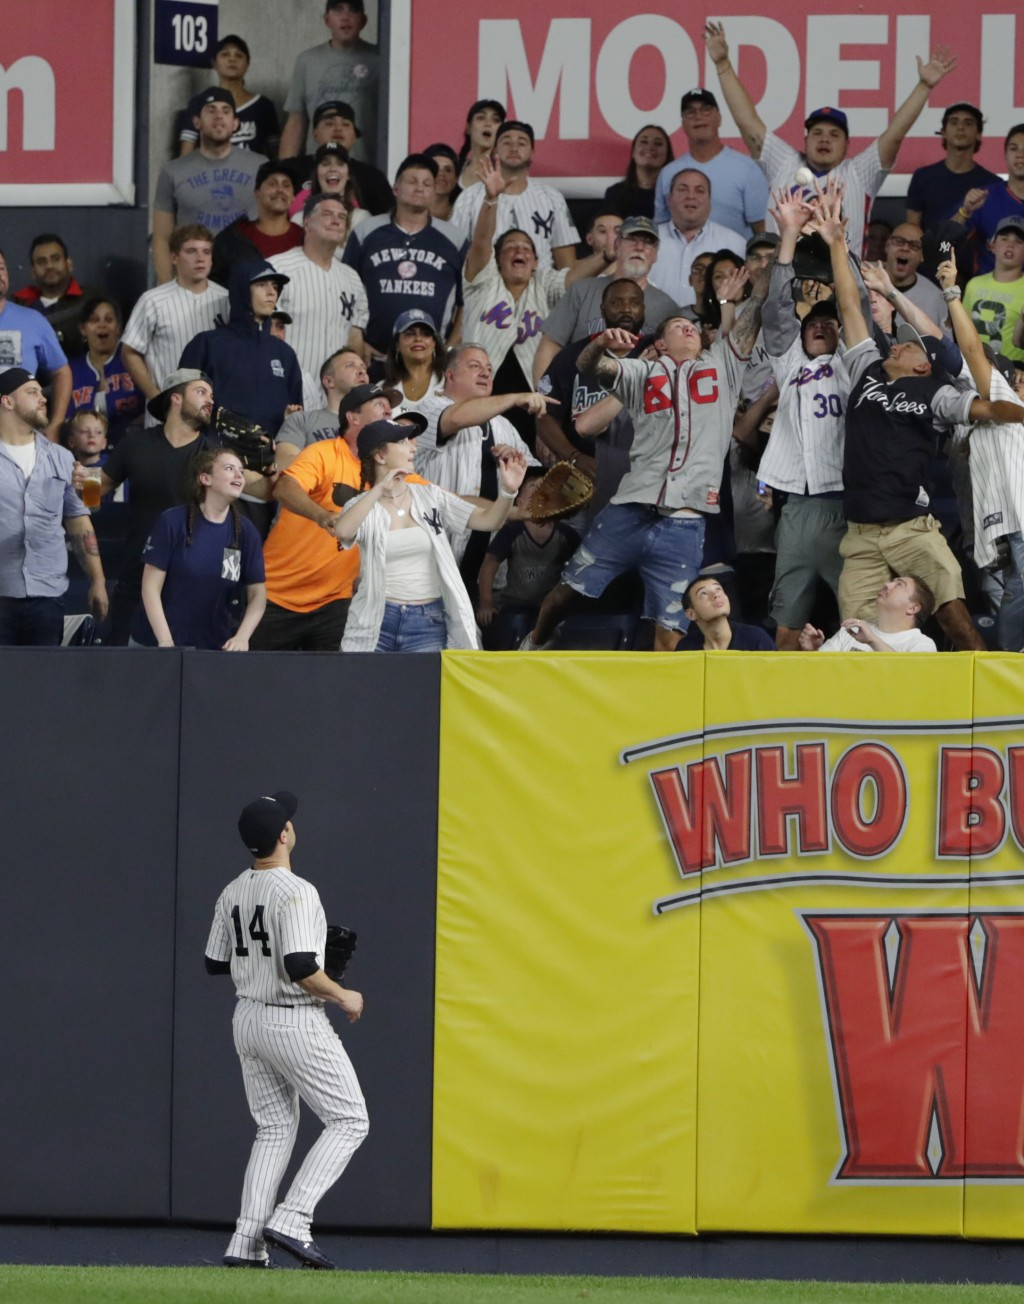 New York Yankees Neil Walker (14) watches as fans attempt to catch a ball hit by New York Mets' Brandon Nimmo for during the seventh inning of a baseb...